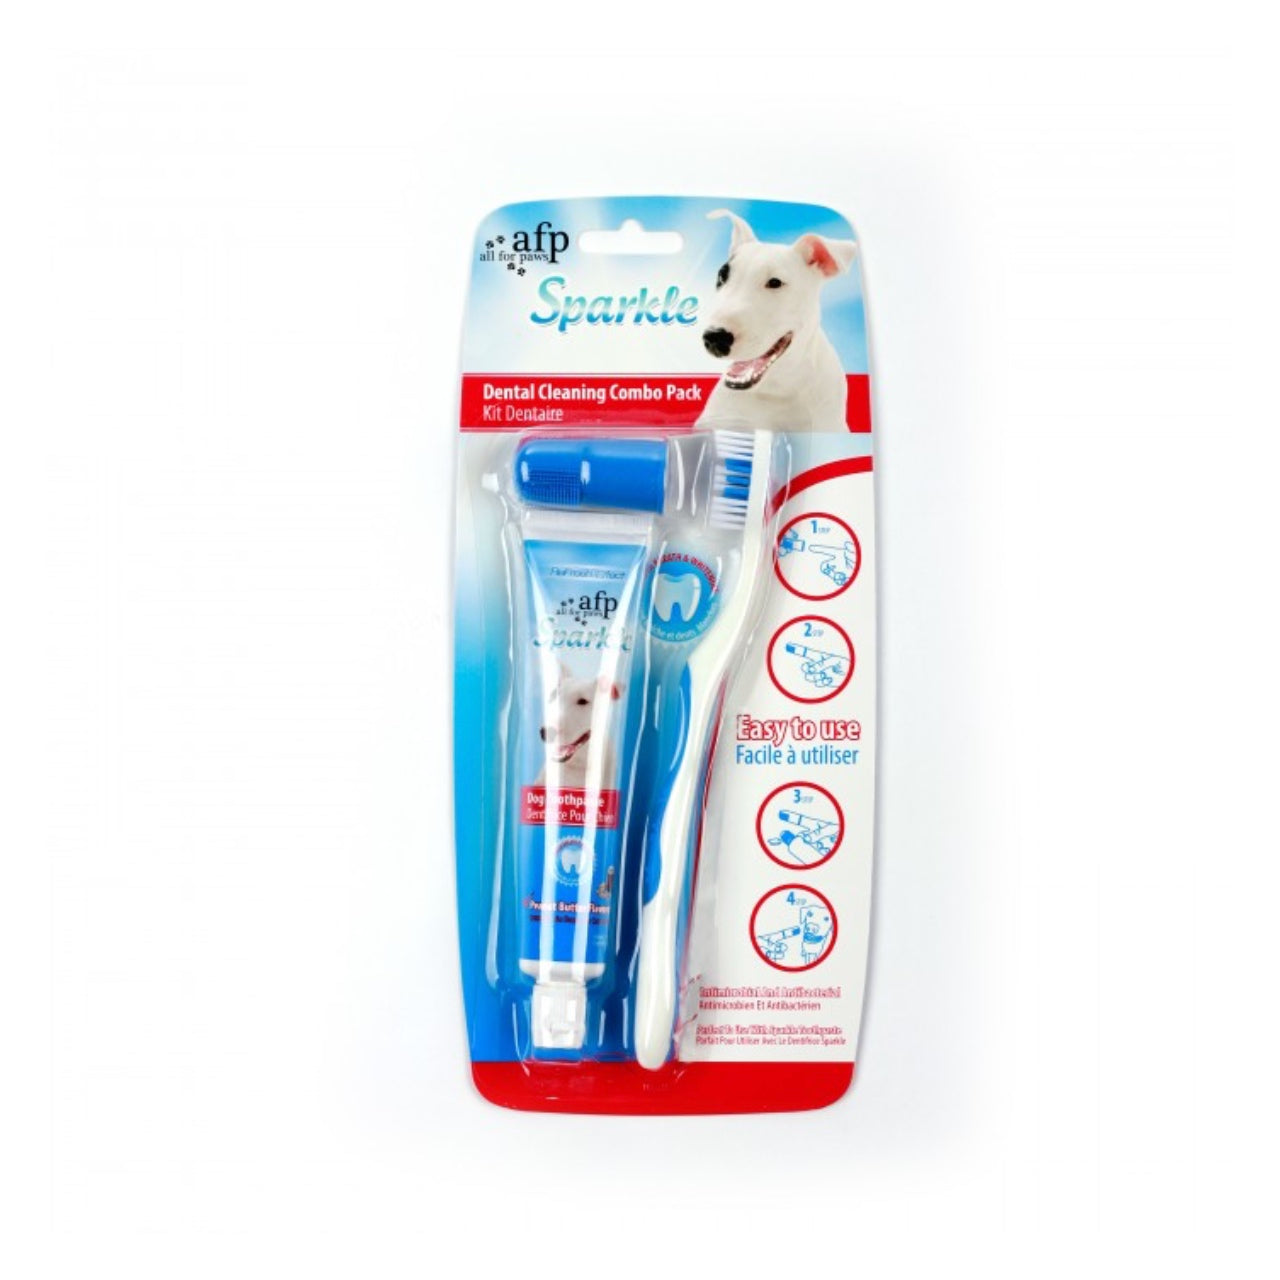 Sparkle Dog Dental Cleaning Combo Pack